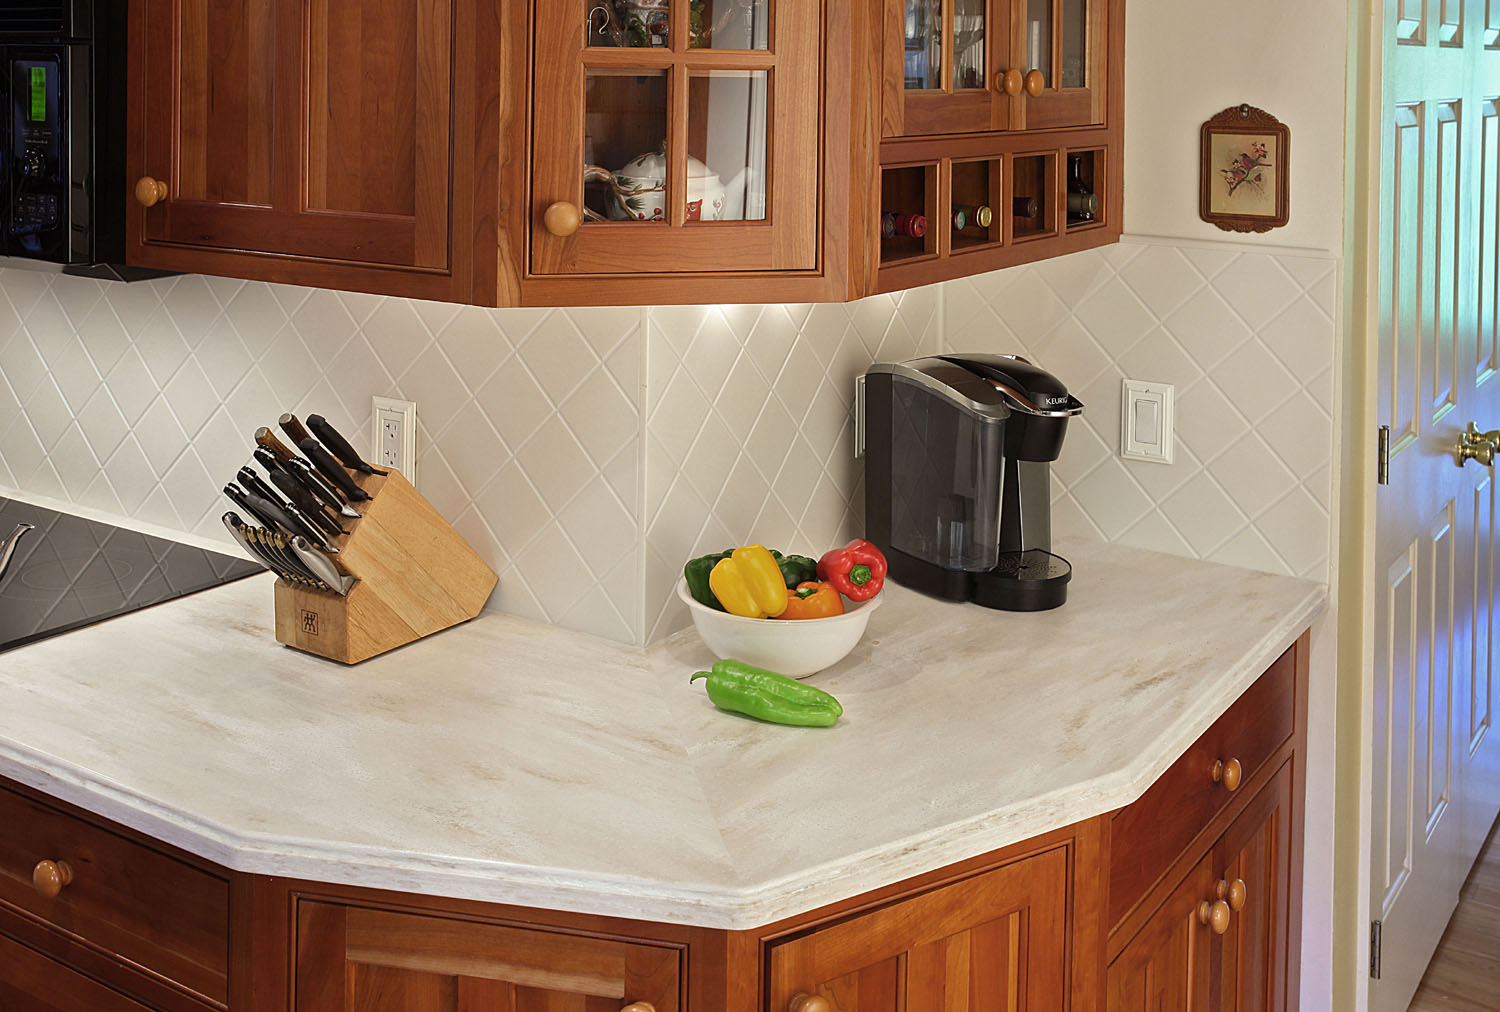 Solid Surfaces countertop made of Carian